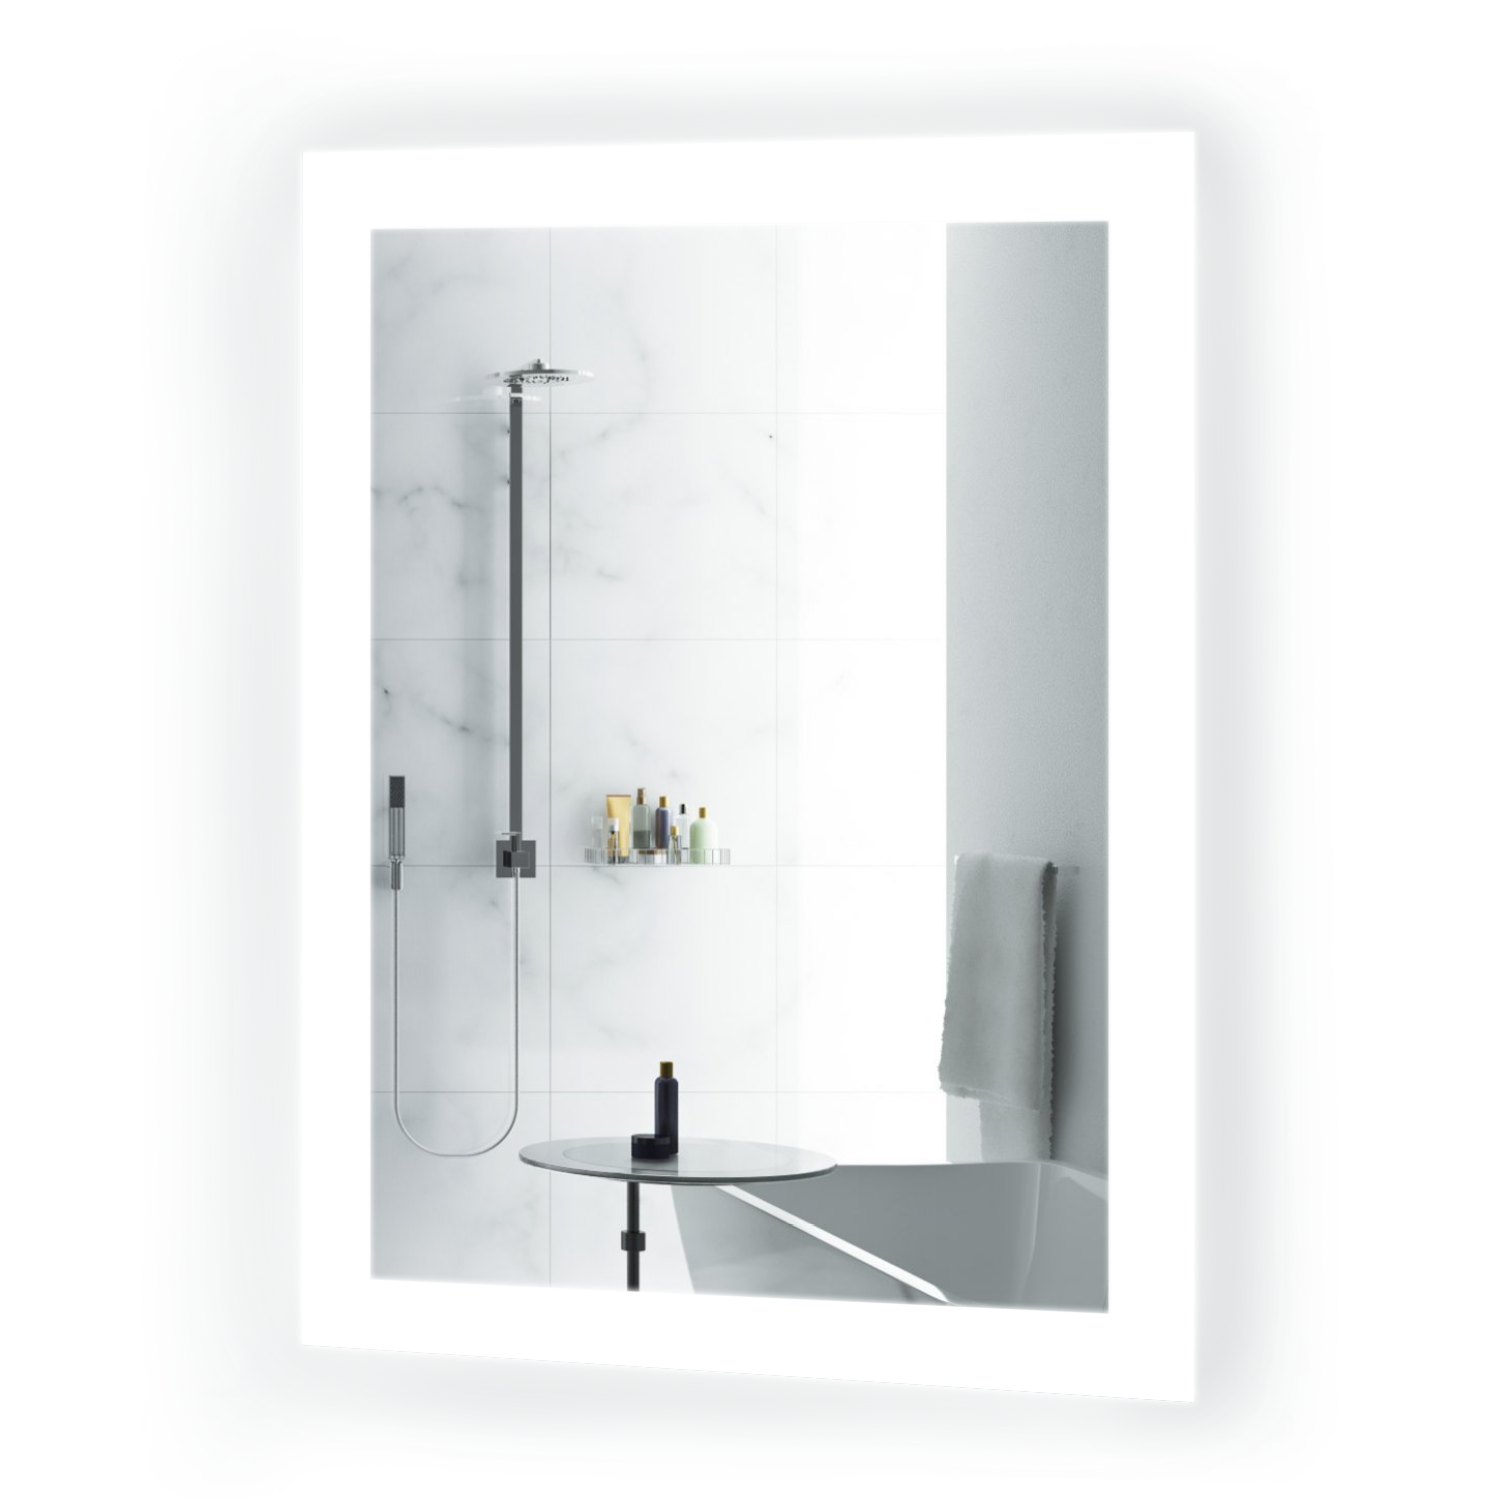 Bijou Small LED Bathroom Mirror 15 Inch X 20 Inch | Lighted Vanity Mirror  Includes Dimmer U0026 Defogger Wall Mount Vertical Or Horizontal Installation  ...